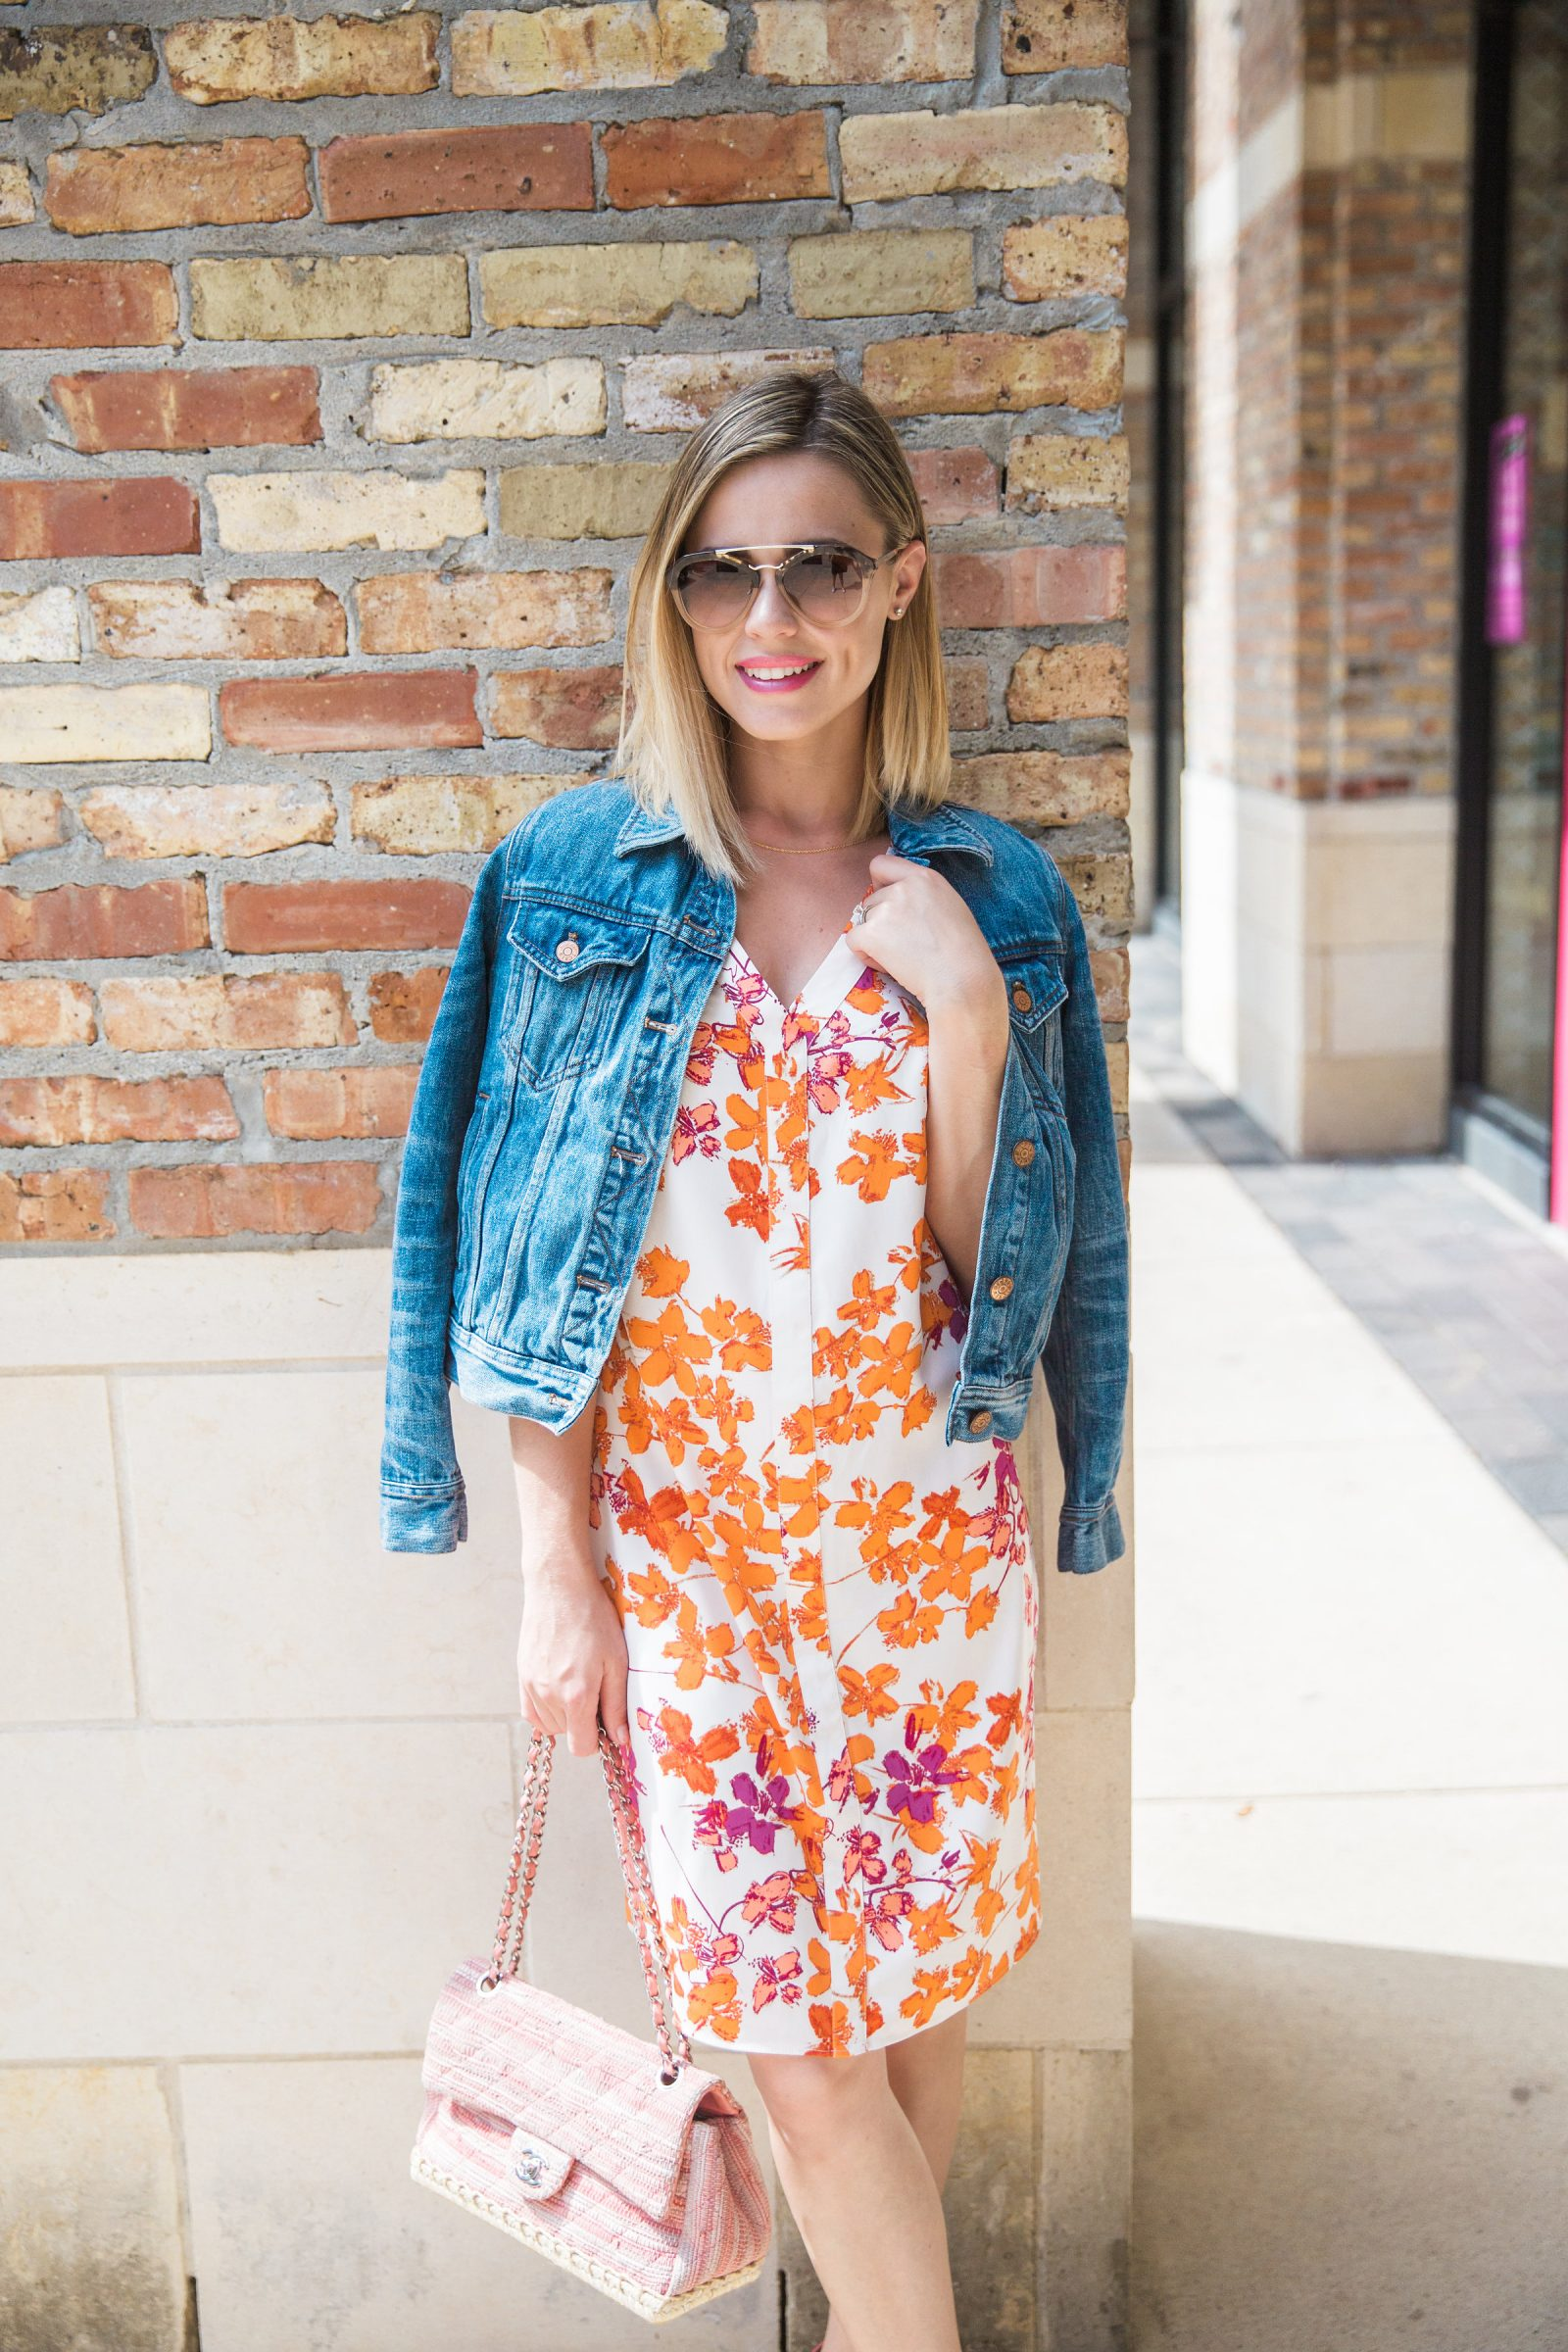 Houston fashion blogger Uptown with Elly Brown wears a fun colorful Floral Dress dropped with a denim jacket for a fresh Spring look!